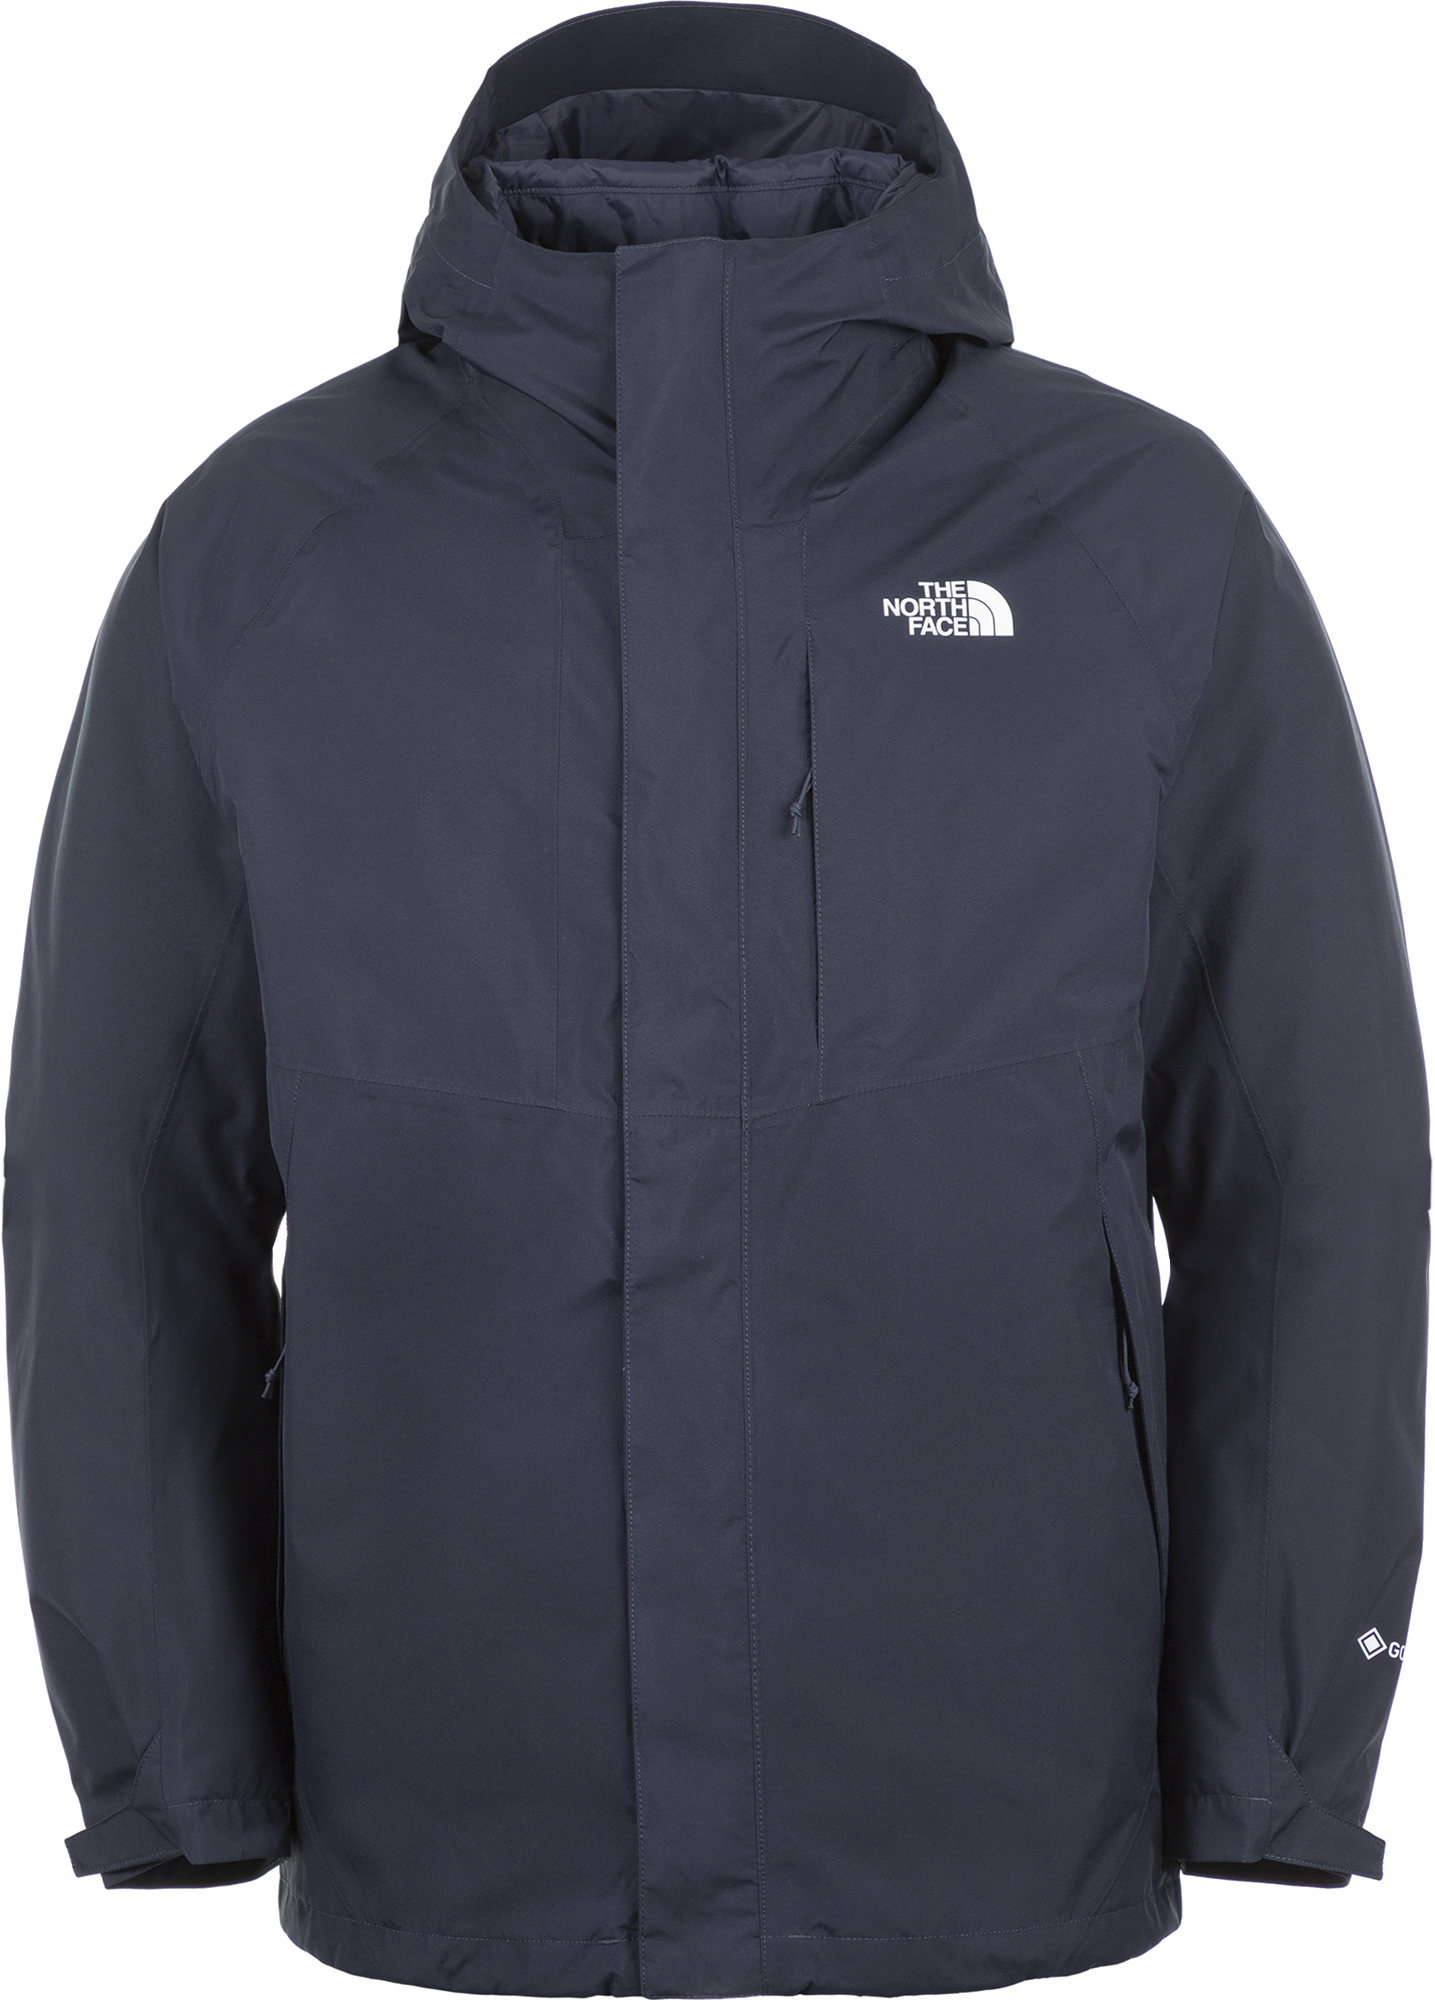 The North Face Куртка 3 в 1 мужская Mountain Light Triclimate®, размер 52